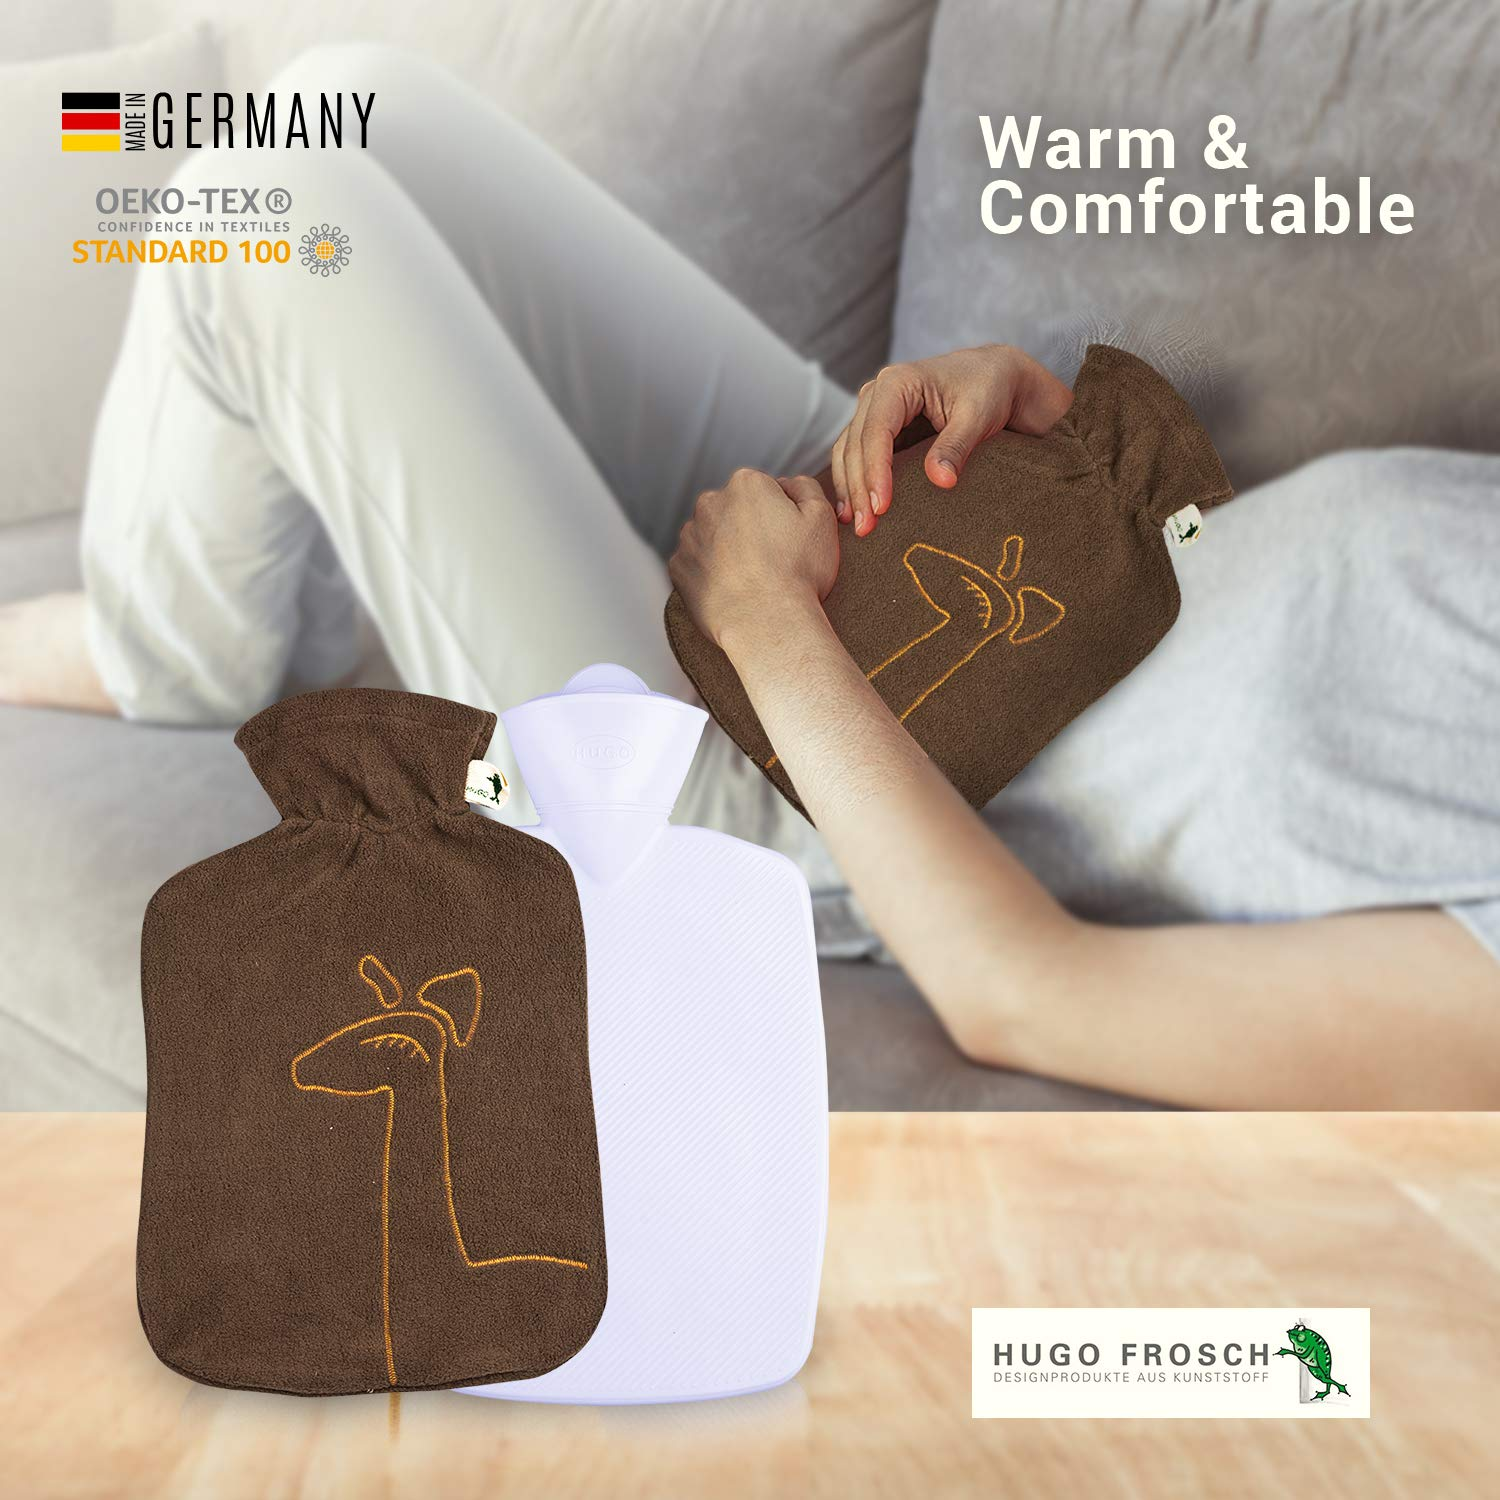 Hot Water Bottle with Cover - Hot Cold Pack Made of Burst Resistant Thermoplastic with Fleece Sleeve Helps Relieve Muscle Aches & Pains, Menstrual Cramps, Flu Symptoms (1.8 L Brown Deer Application) by Hugo Frosch